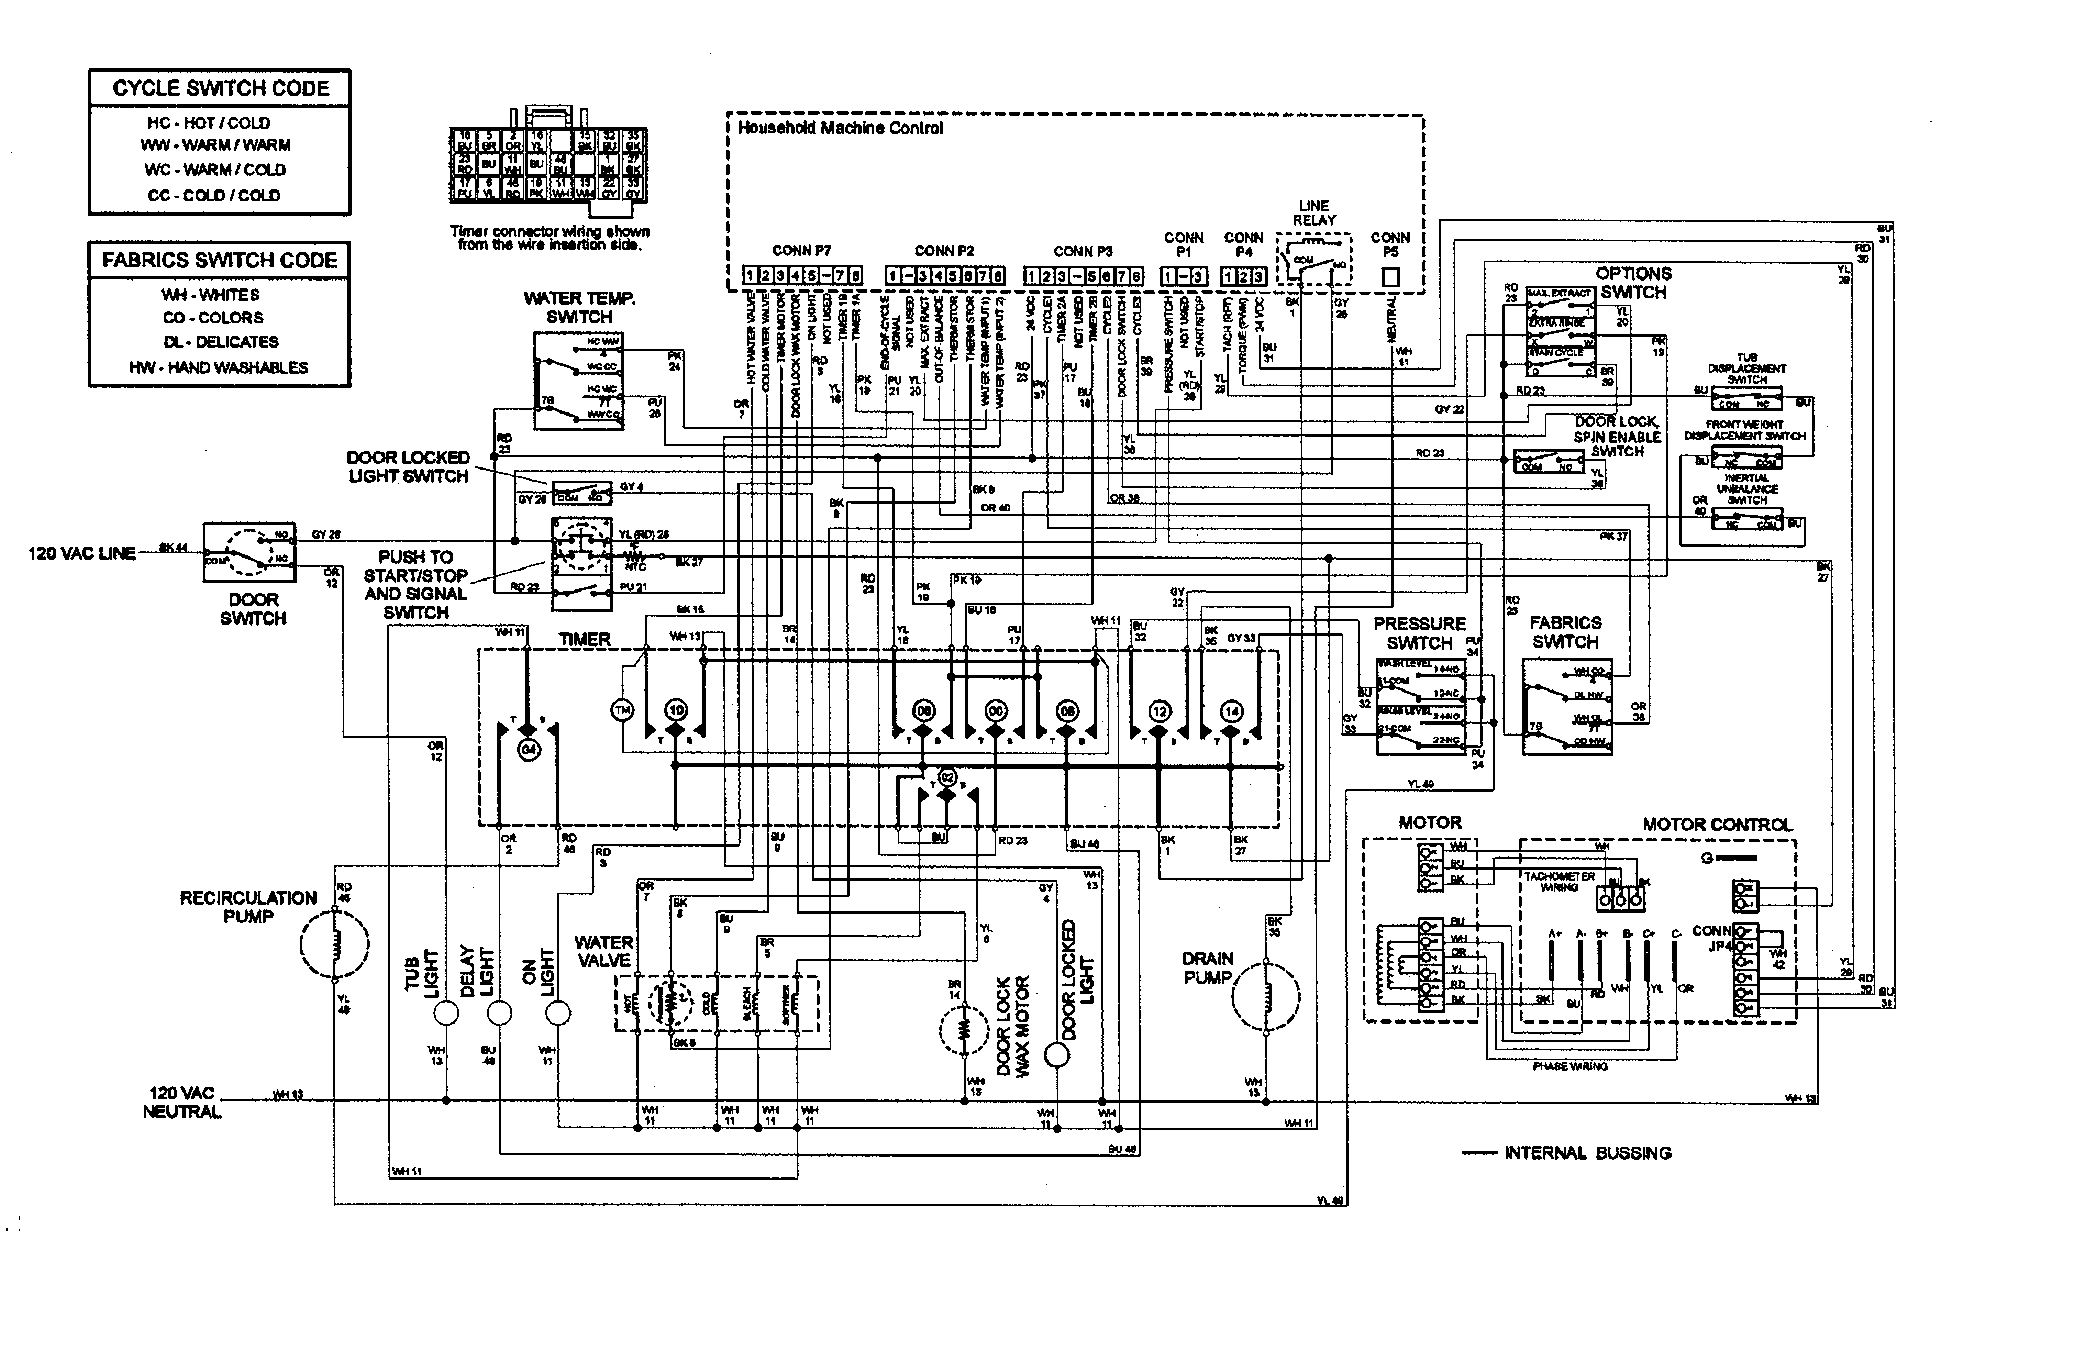 washing machine motor wiring diagram, washing machine function table, washing machine function chart, on washing machine wiring diagram and schematics